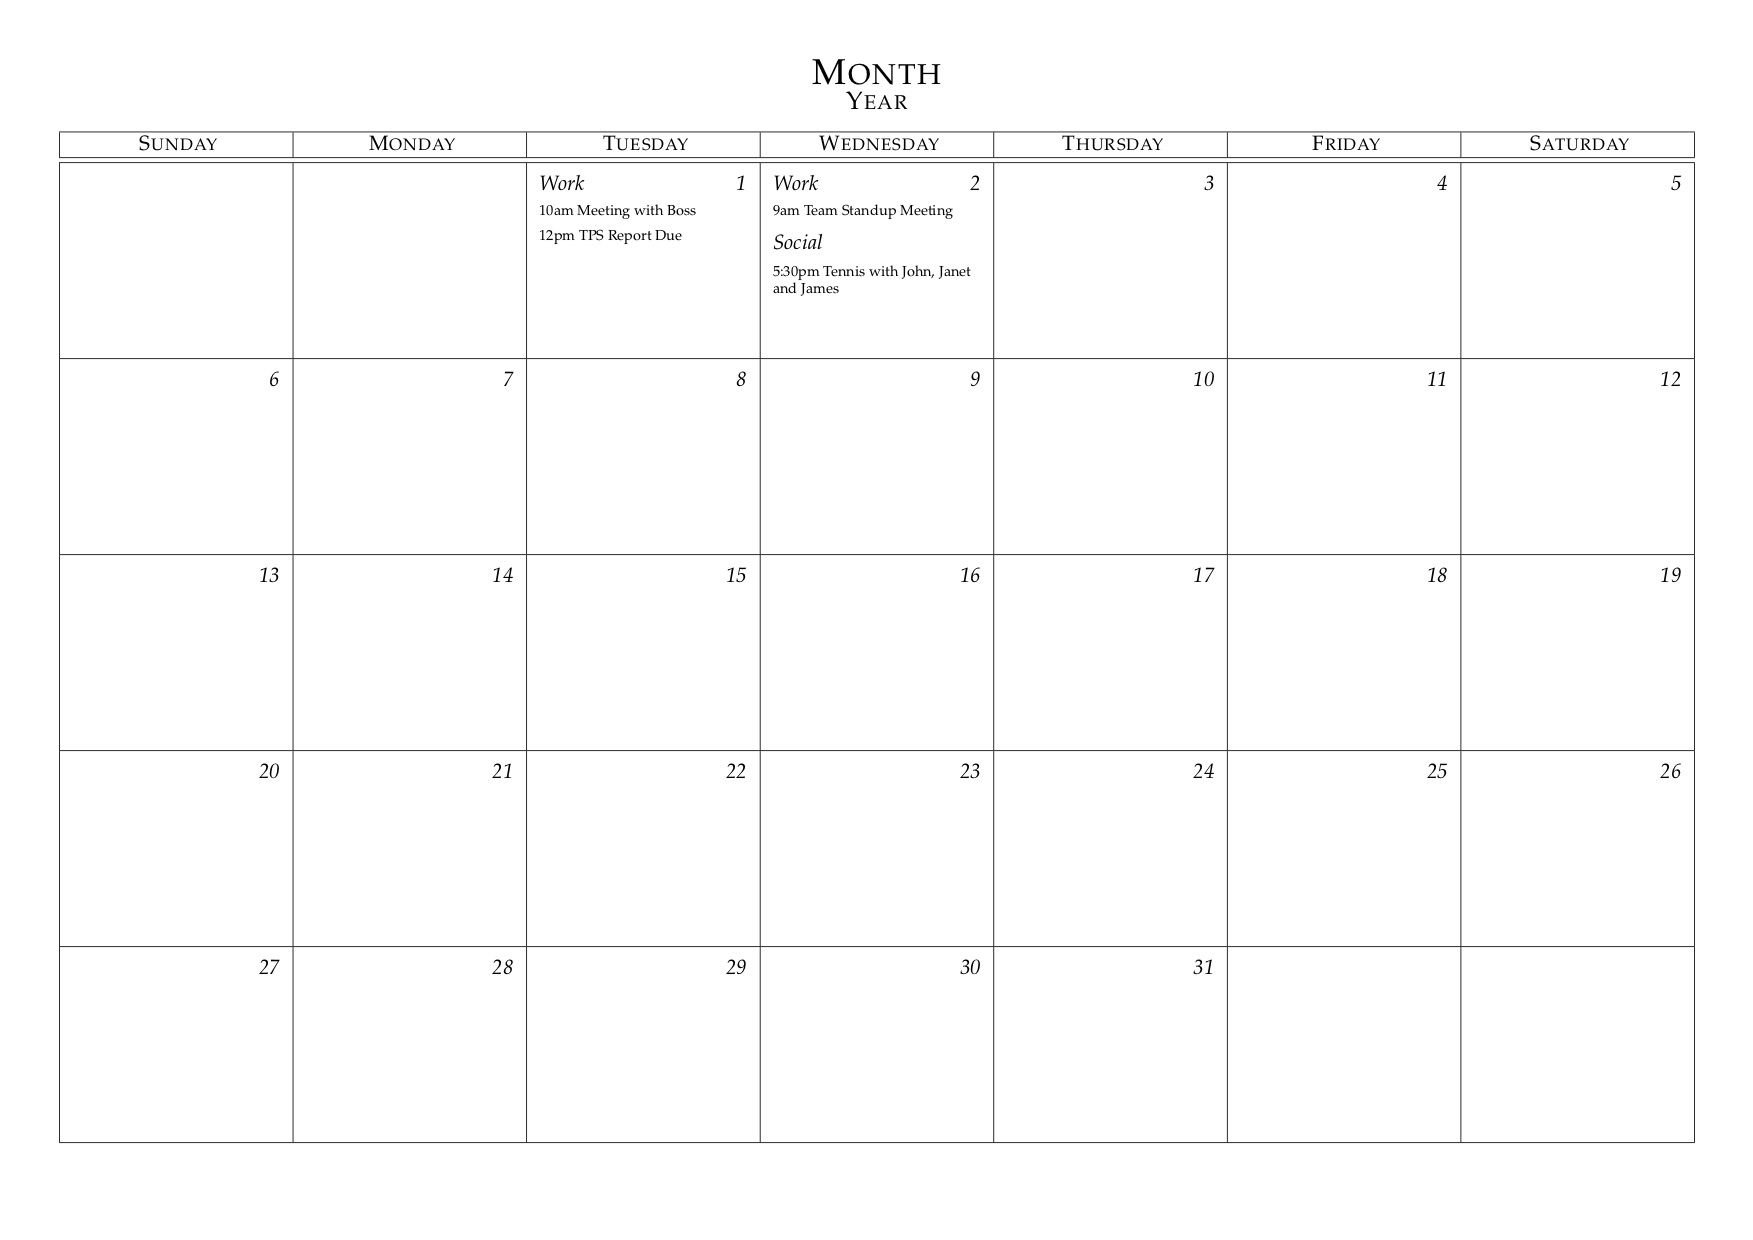 Universal Monthly Calendar I Can Edit   Get Your Calendar April Callendar I Can Edit